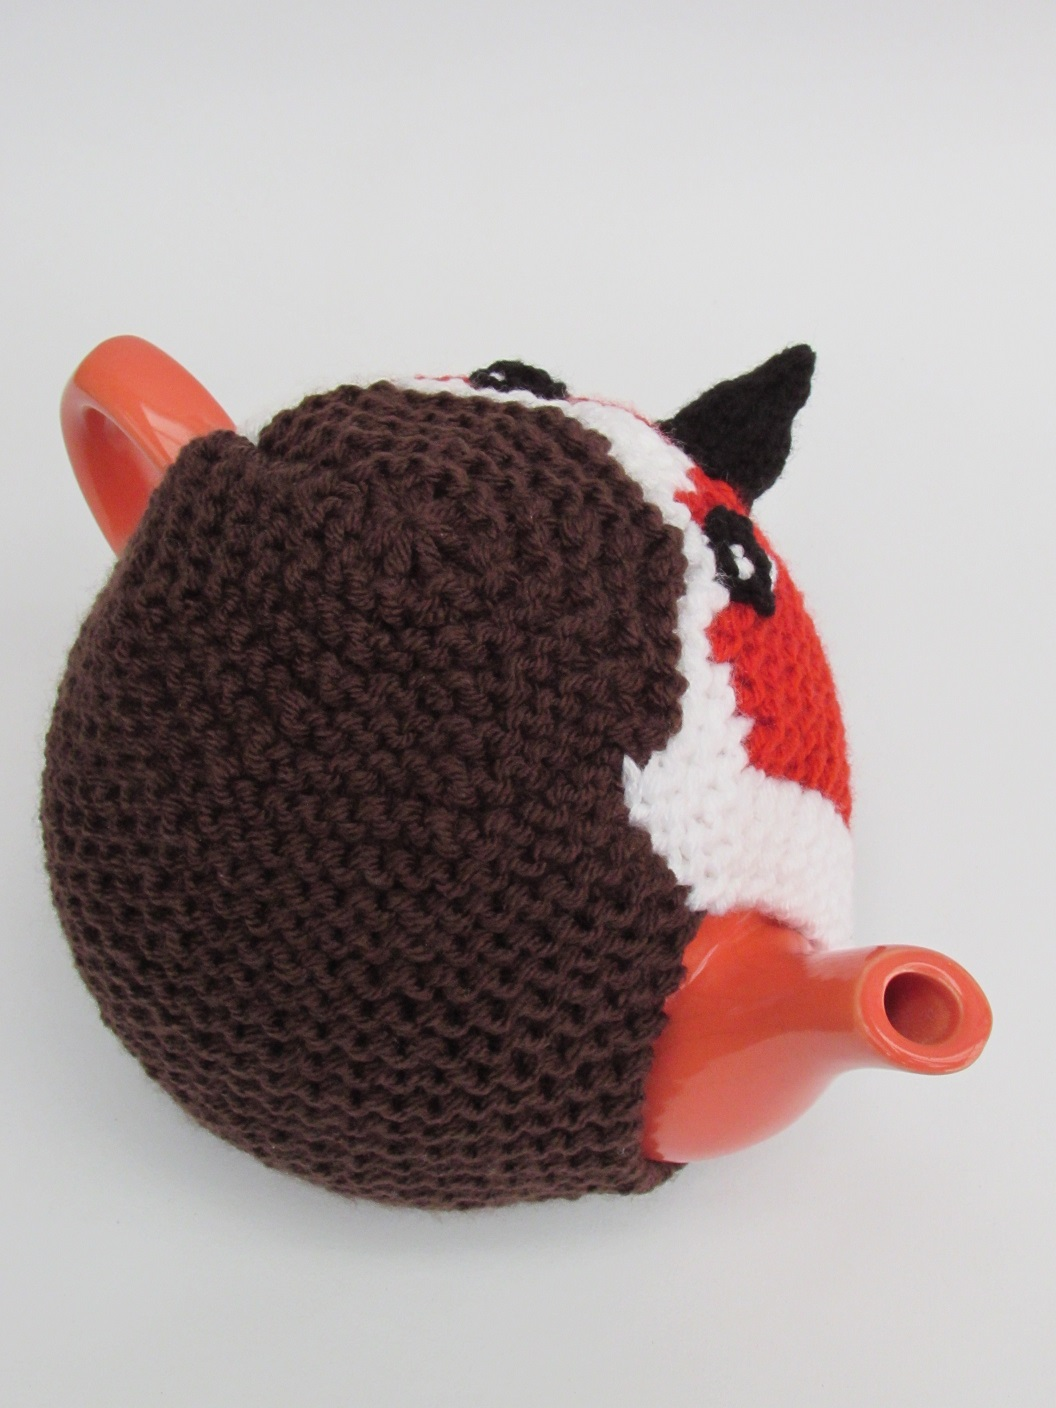 Knitting Pattern For Robin Tea Cosy : Robin Red Breast tea cosy knitting pattern